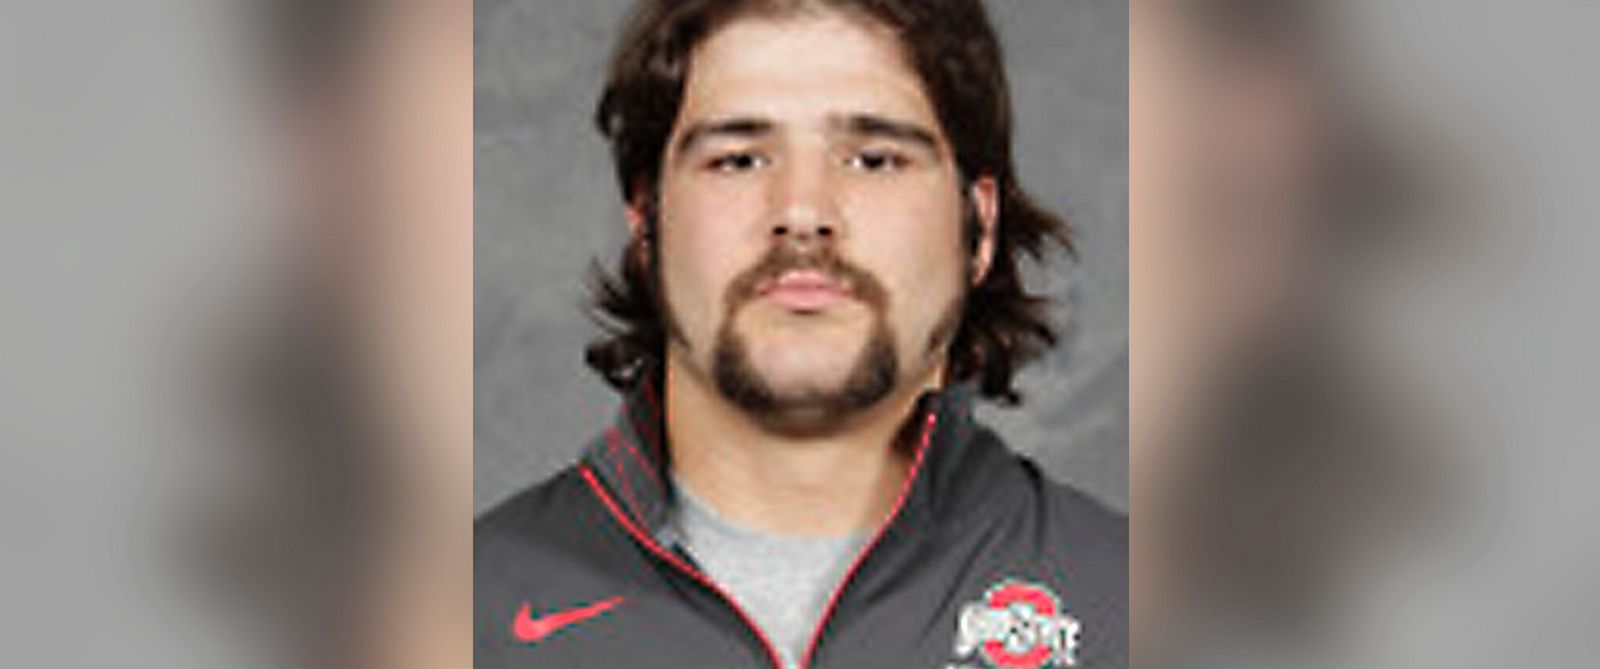 PHOTO: Kosta Karageorge appears in this undated photo from Ohio State Universitys athletic site.